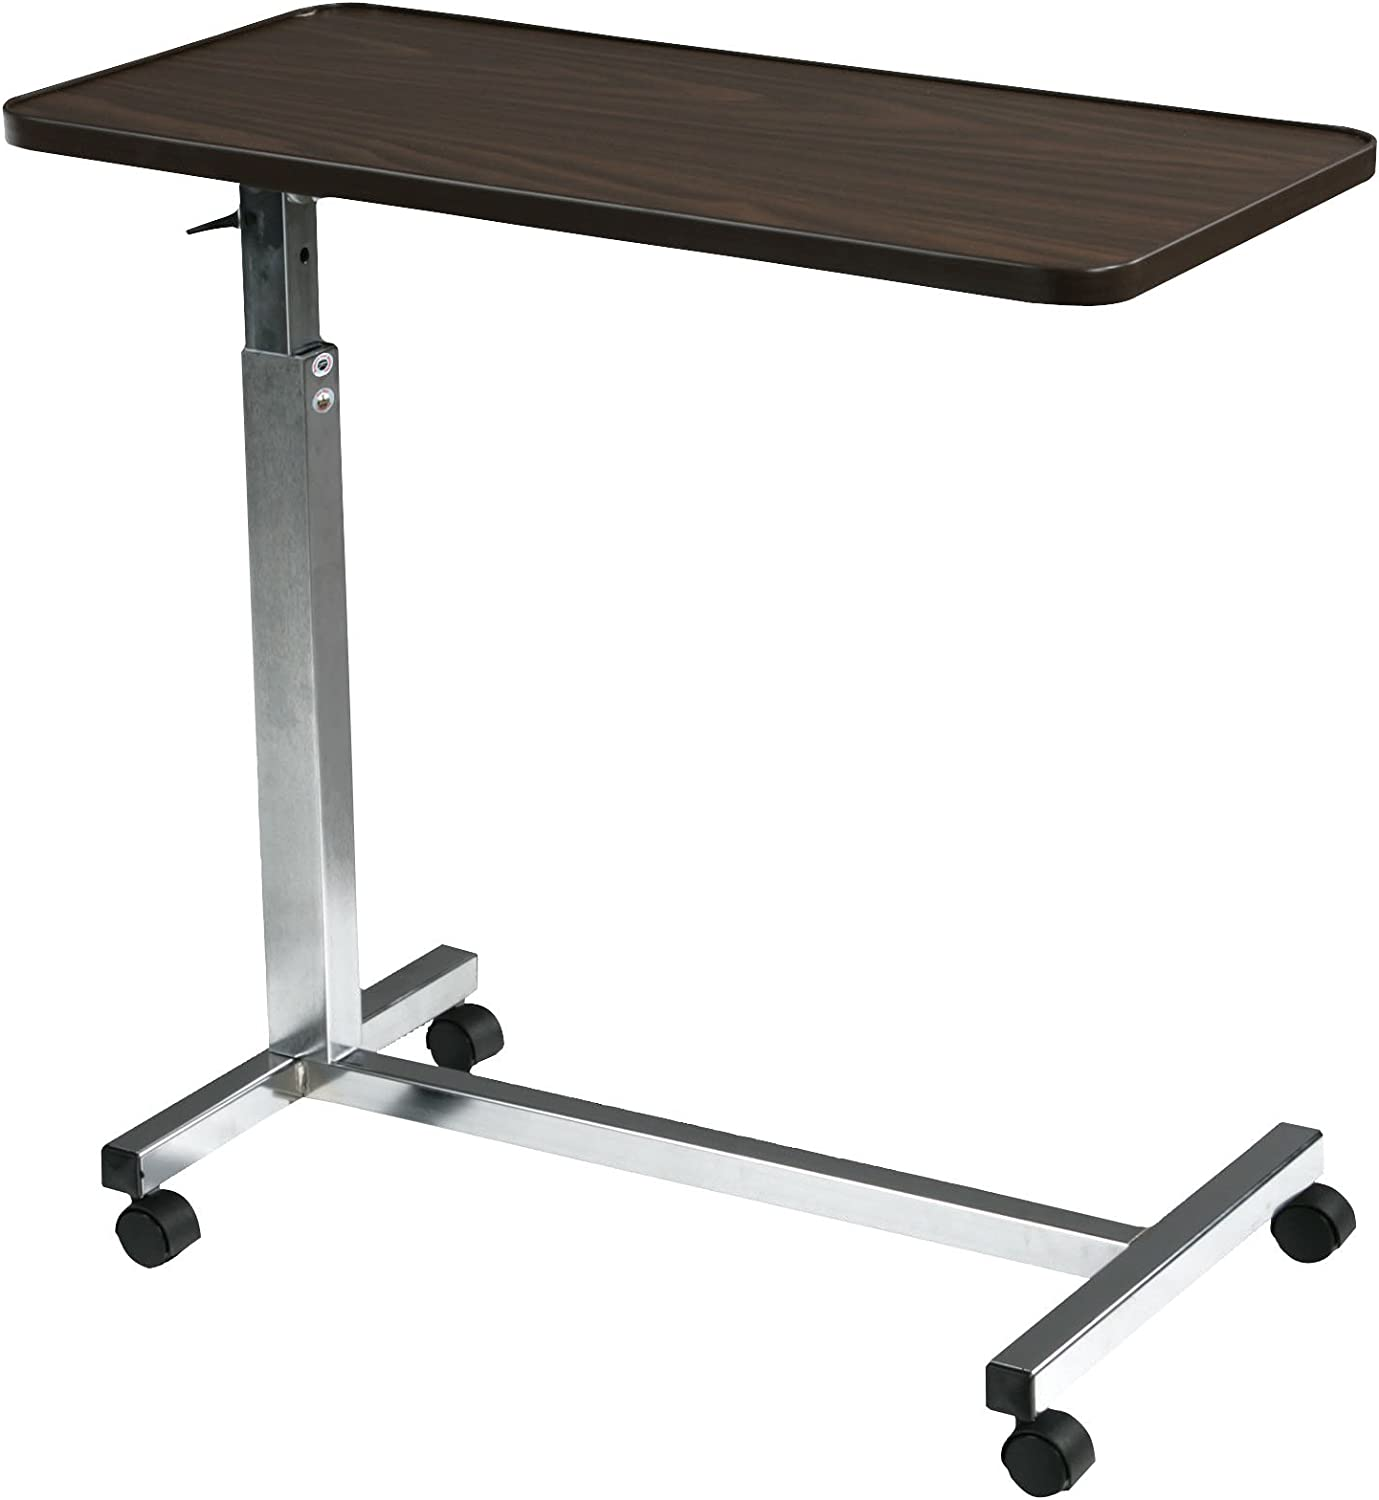 H-Base Chrome-Plated Frame Drive Non-Tilt Overbed Table Walnut 30 x 15 Top